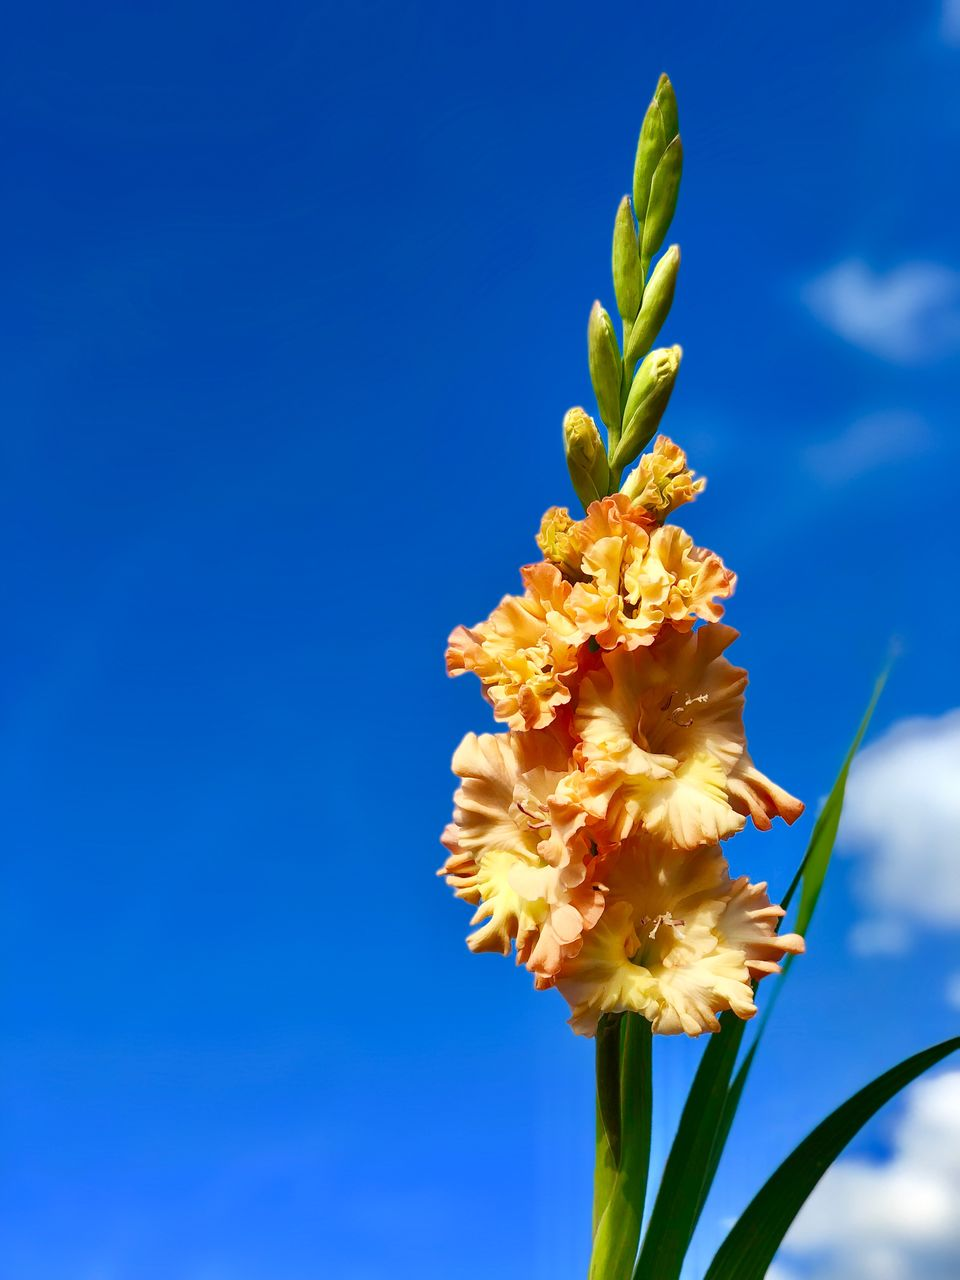 flowering plant, flower, freshness, plant, fragility, vulnerability, beauty in nature, growth, petal, close-up, yellow, blue, nature, flower head, inflorescence, copy space, no people, day, sky, plant stem, outdoors, pollen, blue background, sepal, flower arrangement